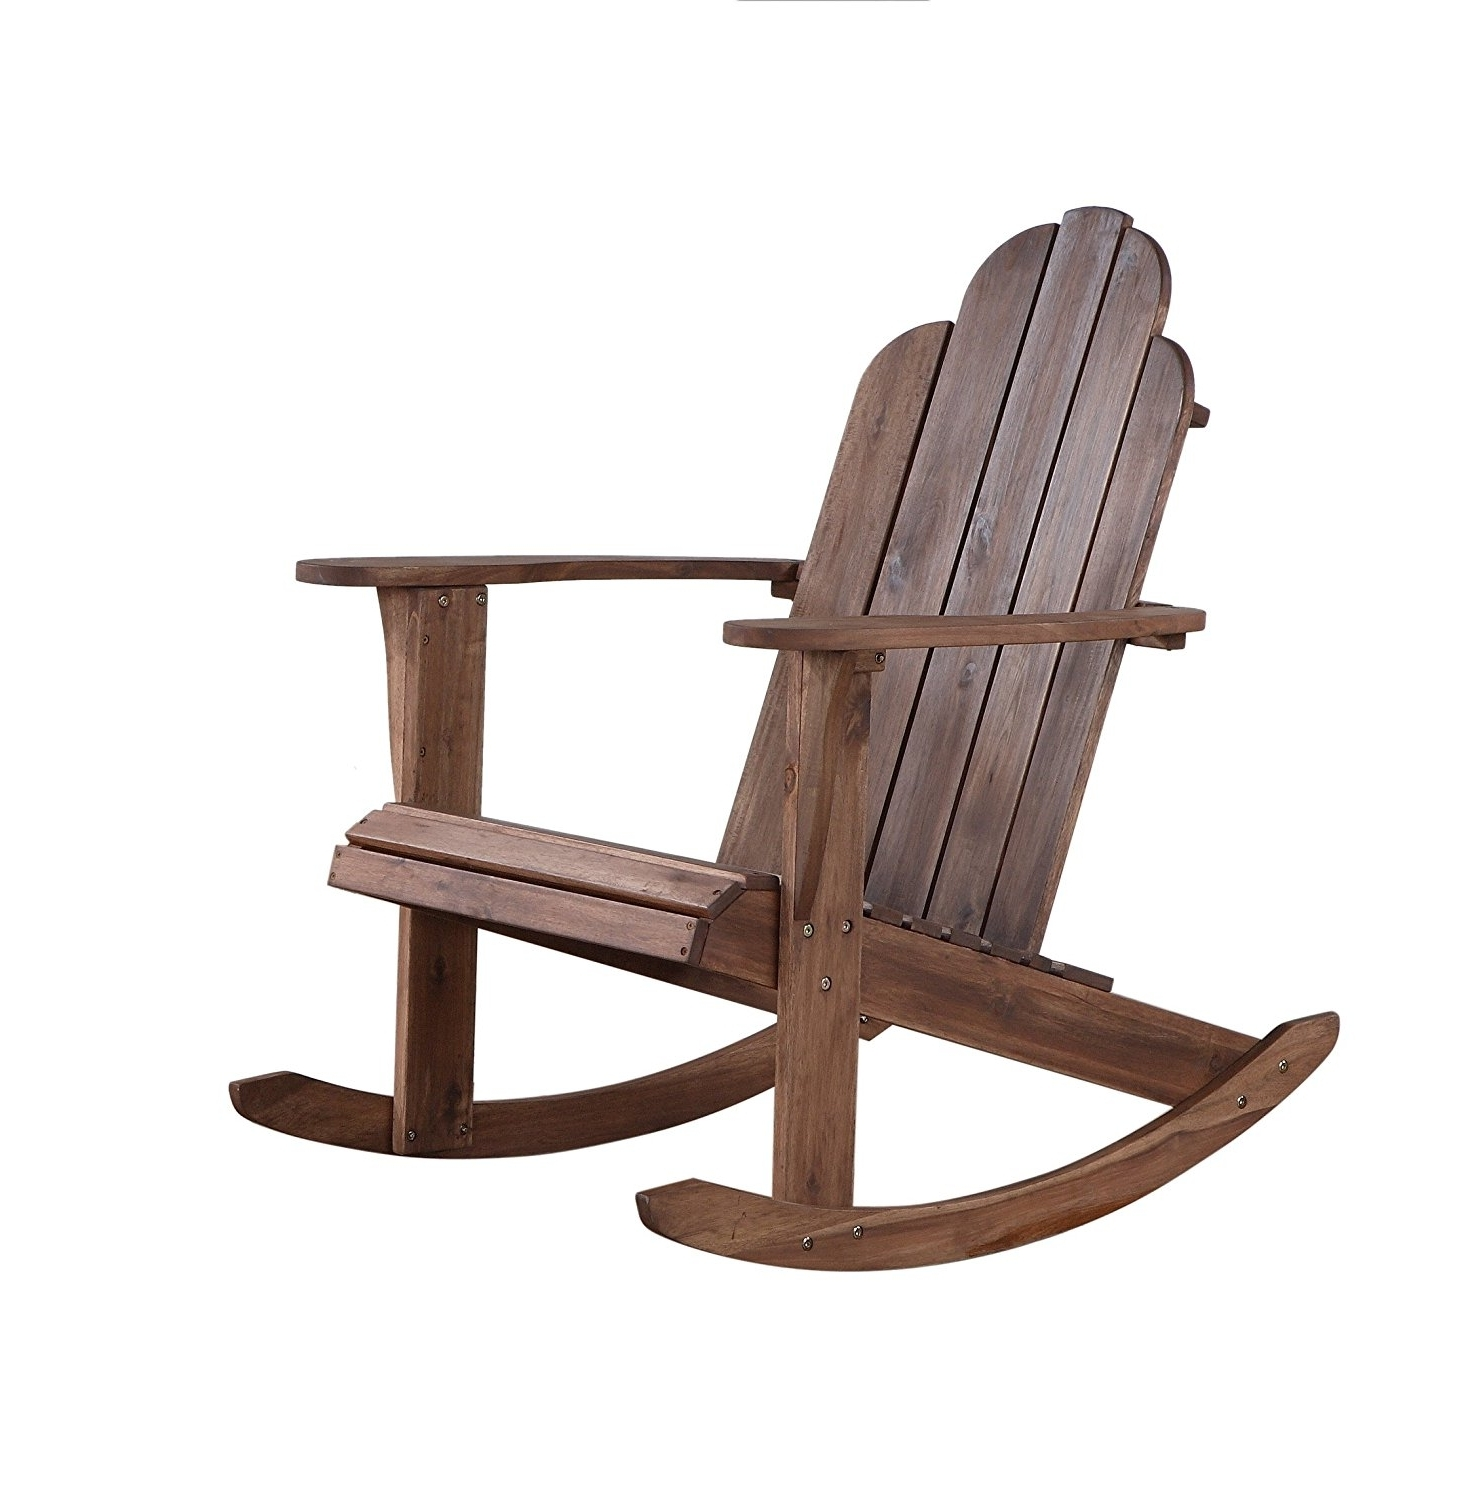 Best And Newest Amazon Com Linon Woodstock Rocking Chair Teak Kitchen Diningndack Inside Amazon Rocking Chairs (View 5 of 20)